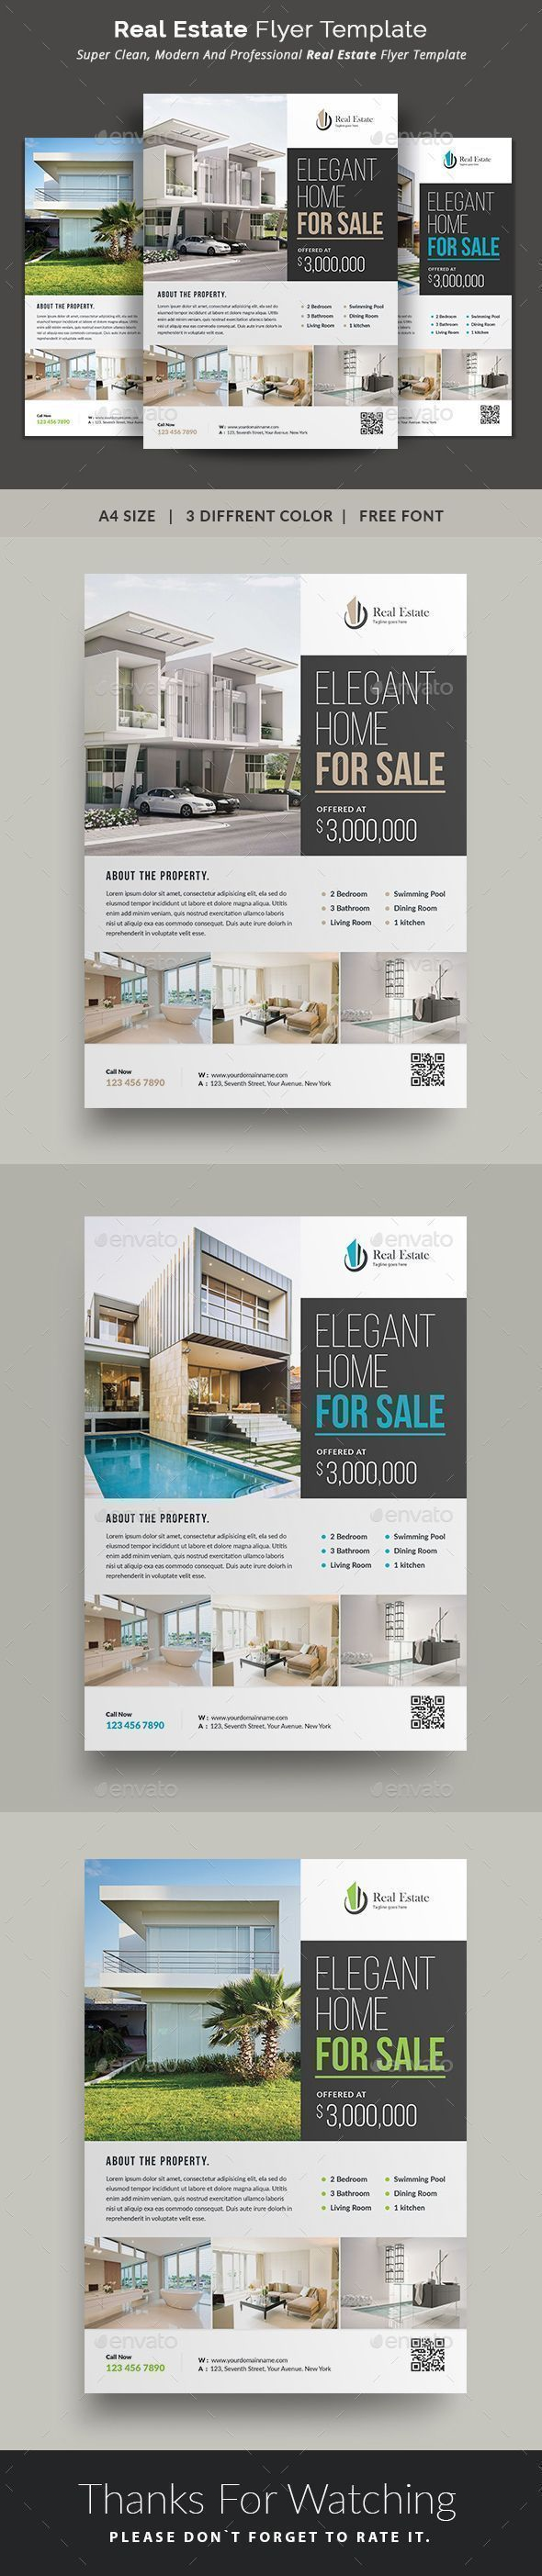 Real Estate #Flyer - Commerce Flyers - This Real Estate Flyer Template is a great tool for promoting your real estate business also useful for a realtor or a real estate agent. You can use it for real estate listings, advertising homes or property for sale,or houses for rent. Fully editable template, you can add images of your choice and change the texts. #realestateadvertising #toolsforremodeling #realestatebusiness